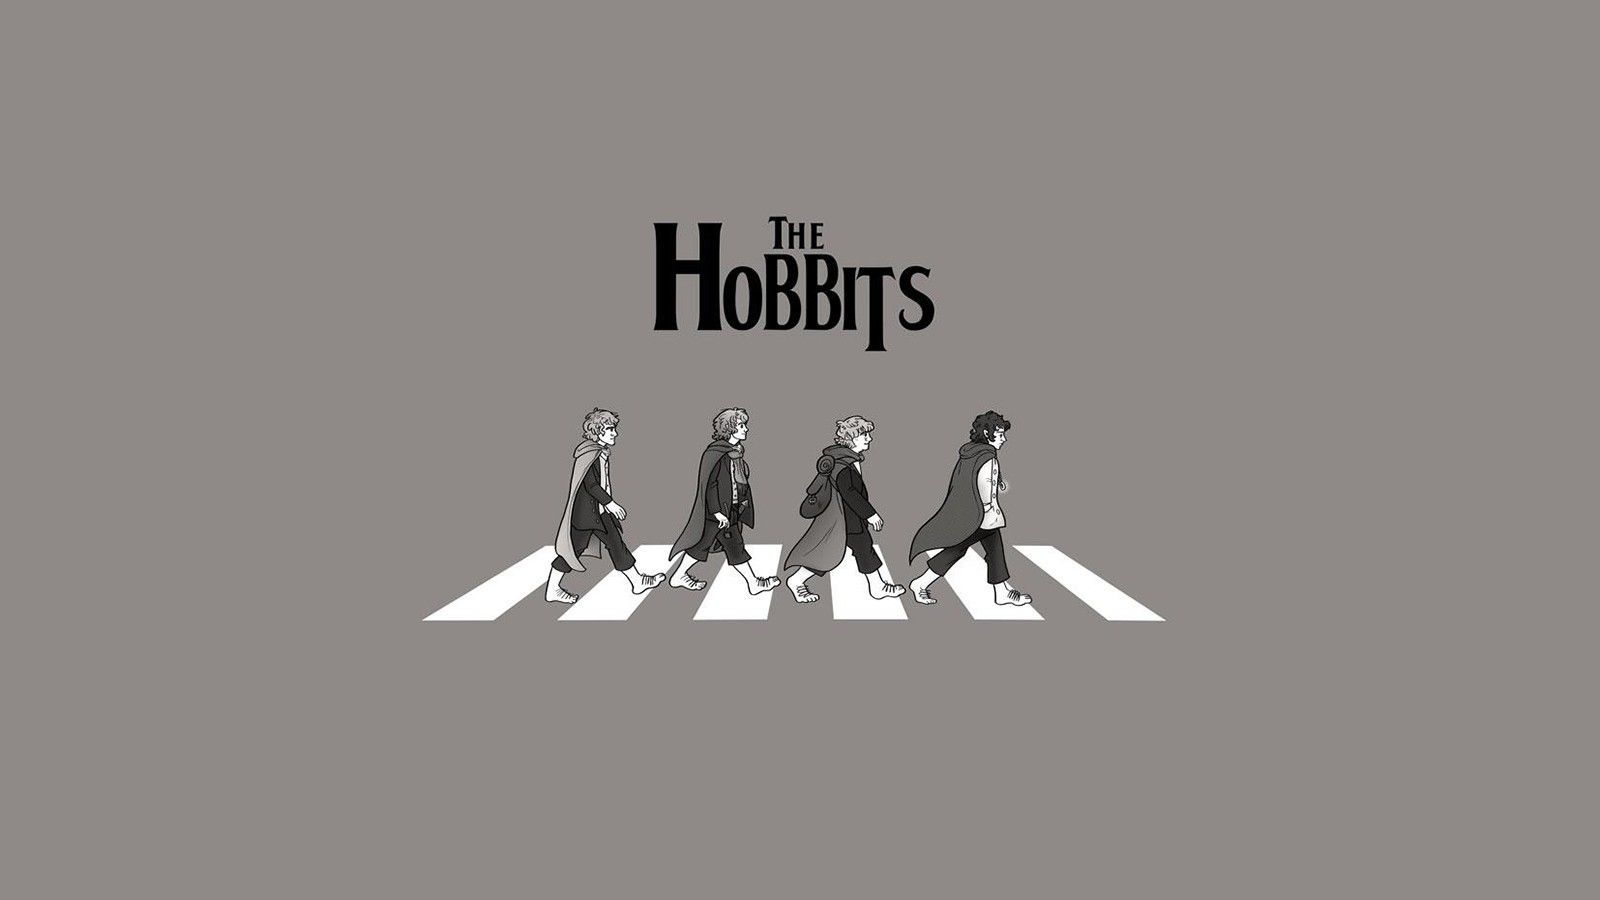 Abbey Road Humor The Lord Of The Rings Grayscale Hobbits 1600x900 Wallpaper Lord Of The Rings Lord The Hobbit